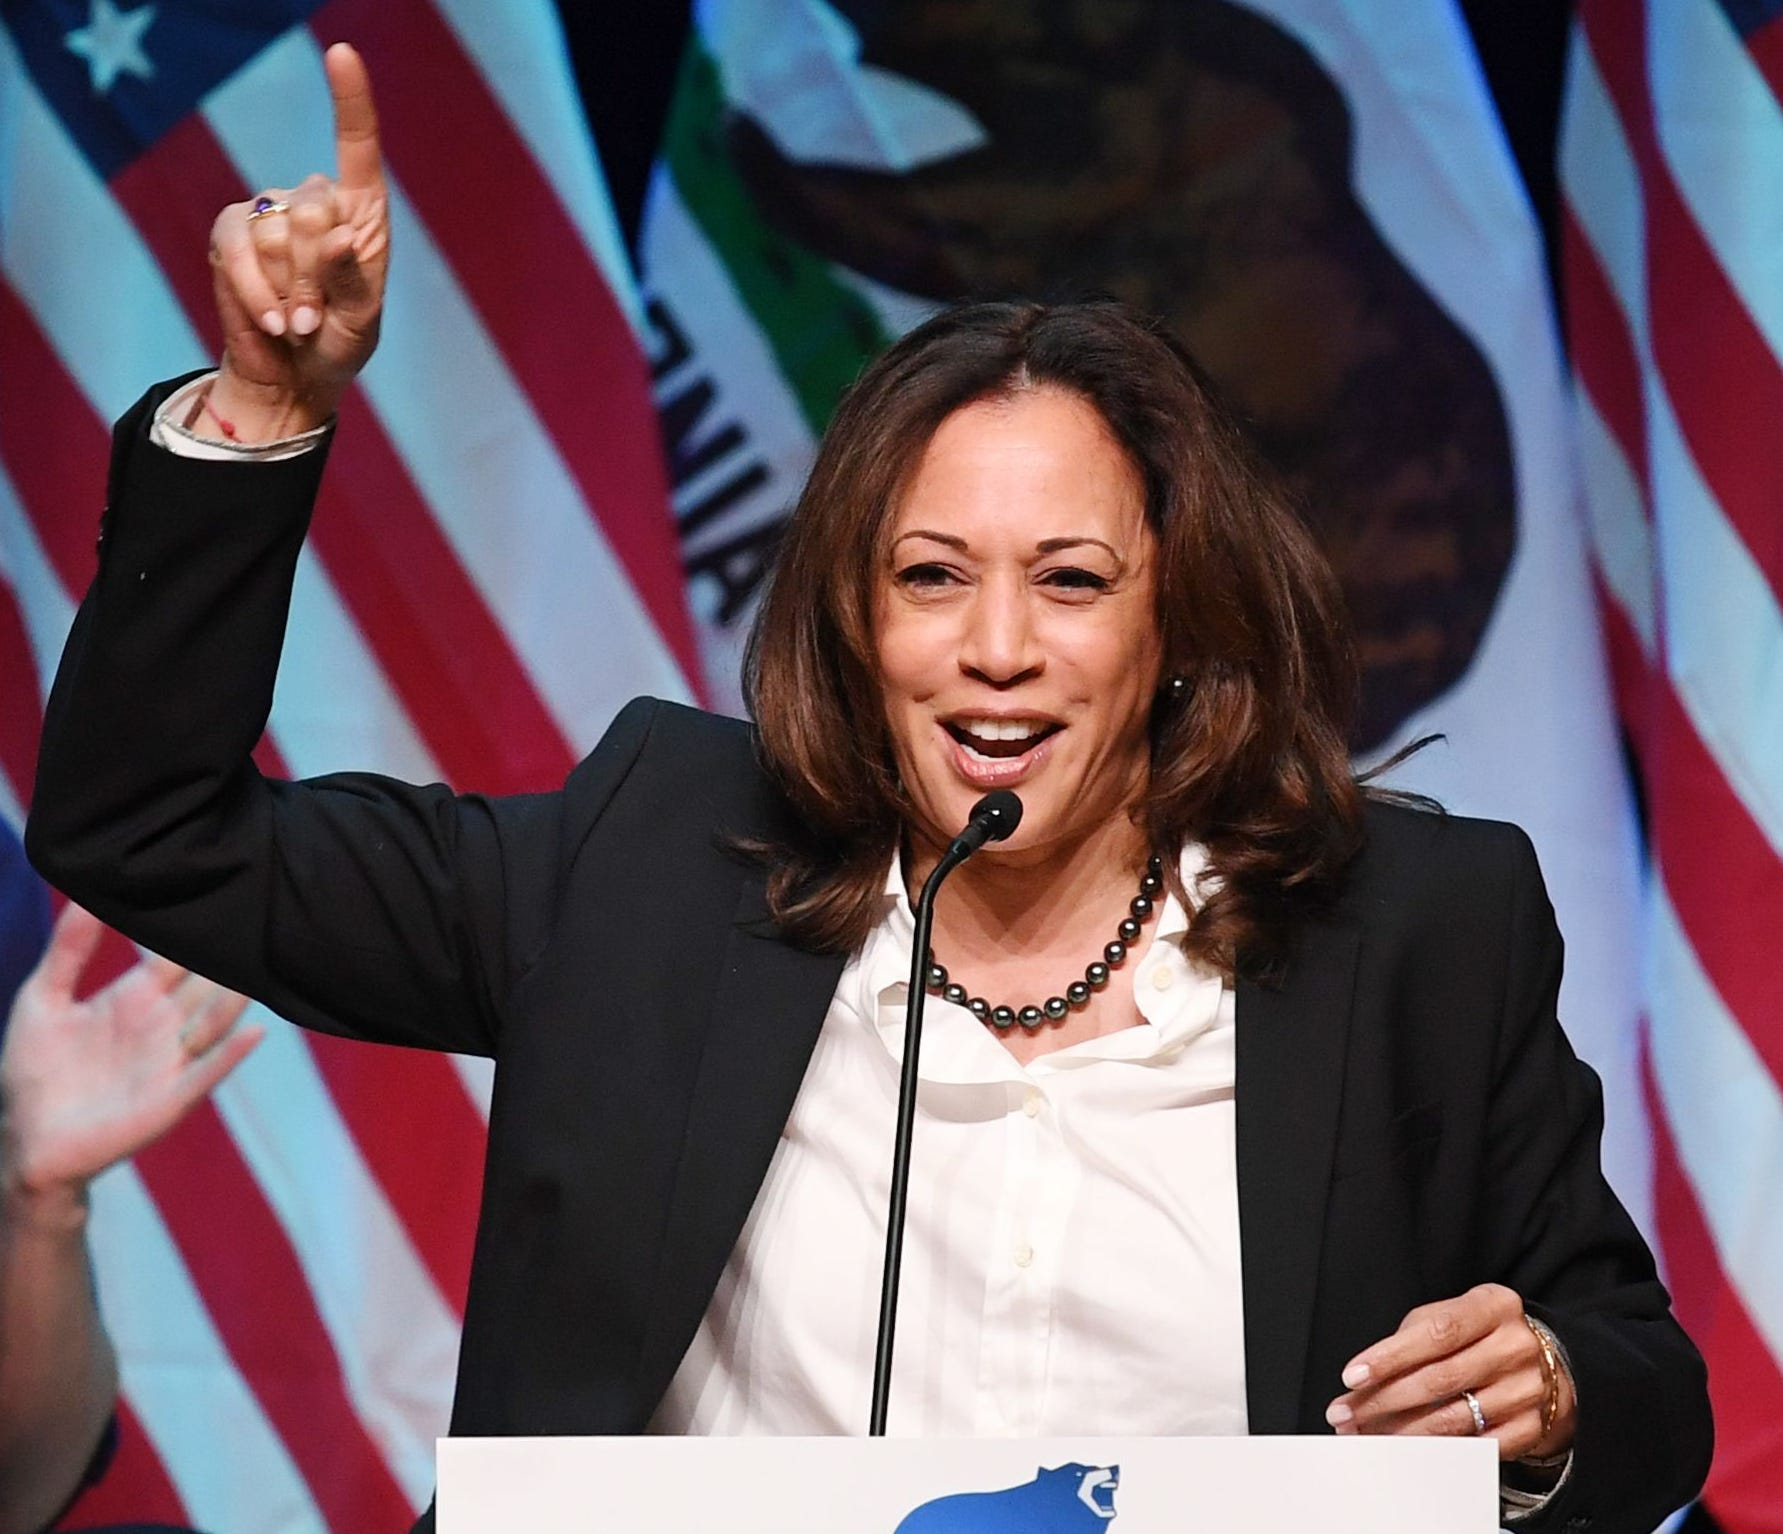 Sen. Kamala Harris, D-Calif., speaks at a rally for California gubernatorial candidate Gavin Newsom before the mid-term elections in Santa Clarita, California, on Nov. 3, 2018.